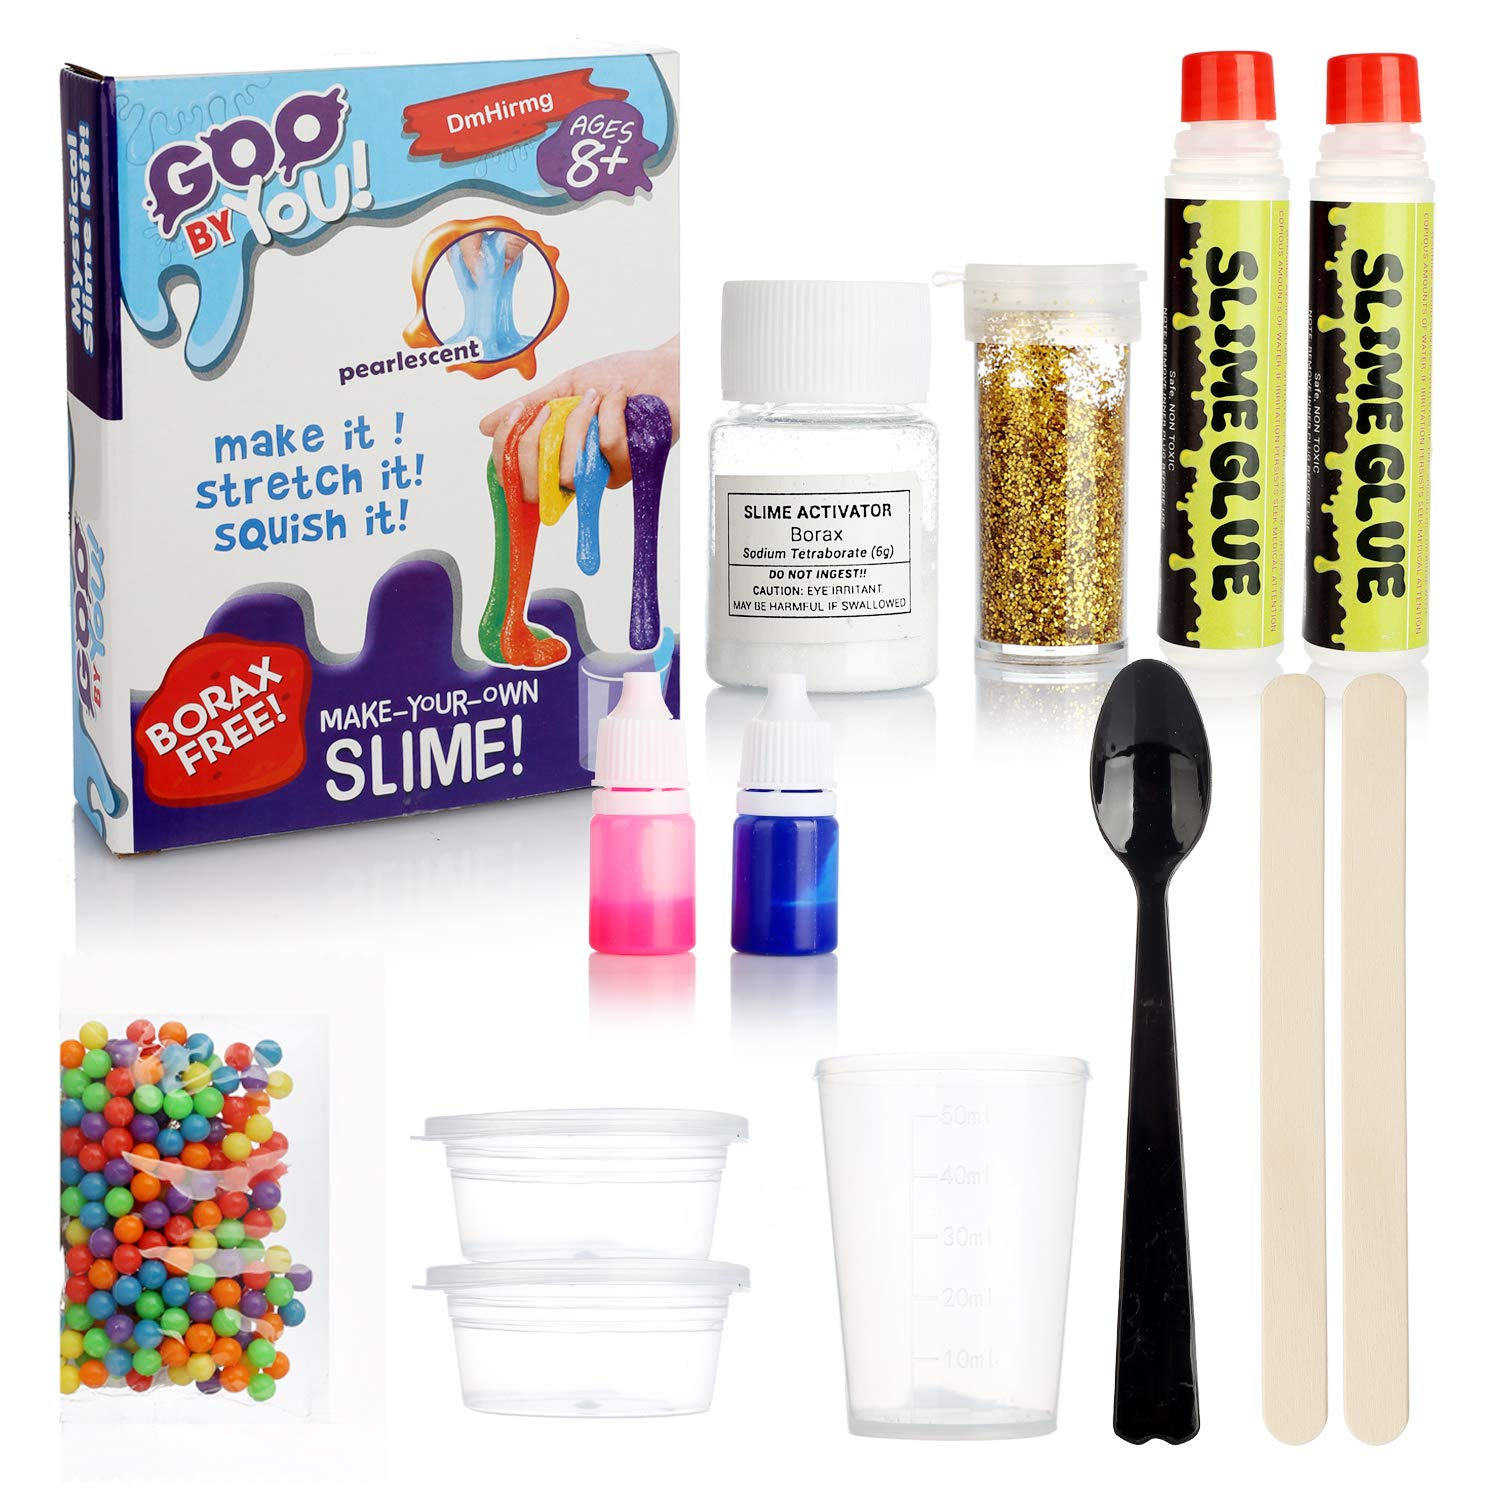 Slime Kit Suppliers, DIY Slime Kit for Girls Making Slime Kit by Yourself with All The Safety Accessories Needed in Slime Making by DmHirmg BesTim Digital